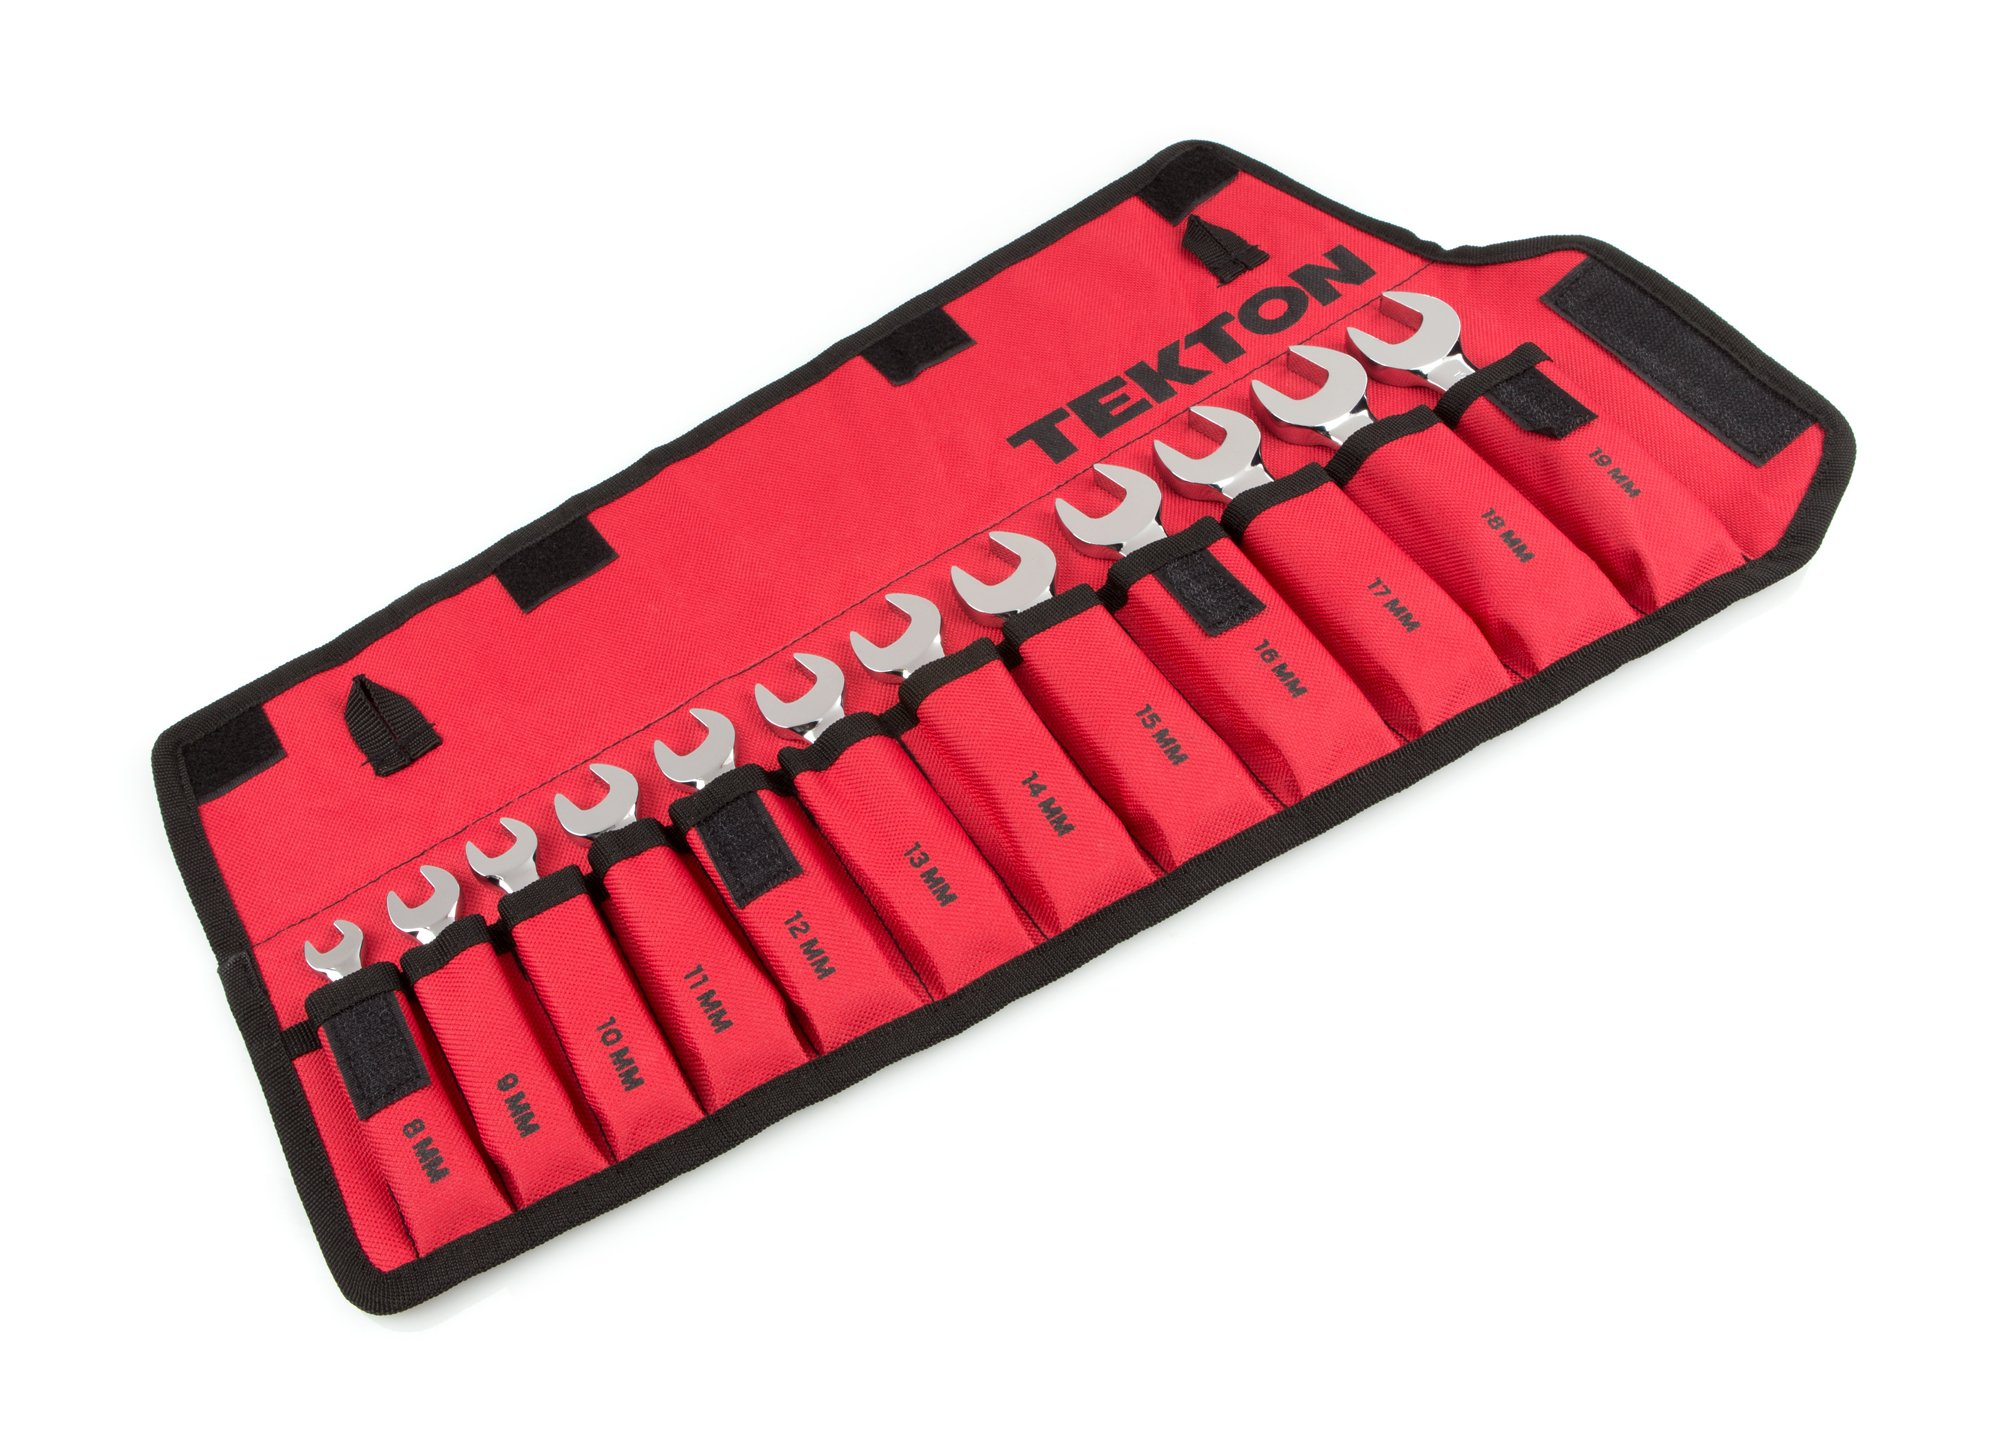 TEKTON WRN50190 Stubby Ratcheting Combination Wrench Set with Roll-up Storage Pouch, Metric, 8 mm - 19 mm, 12-Piece